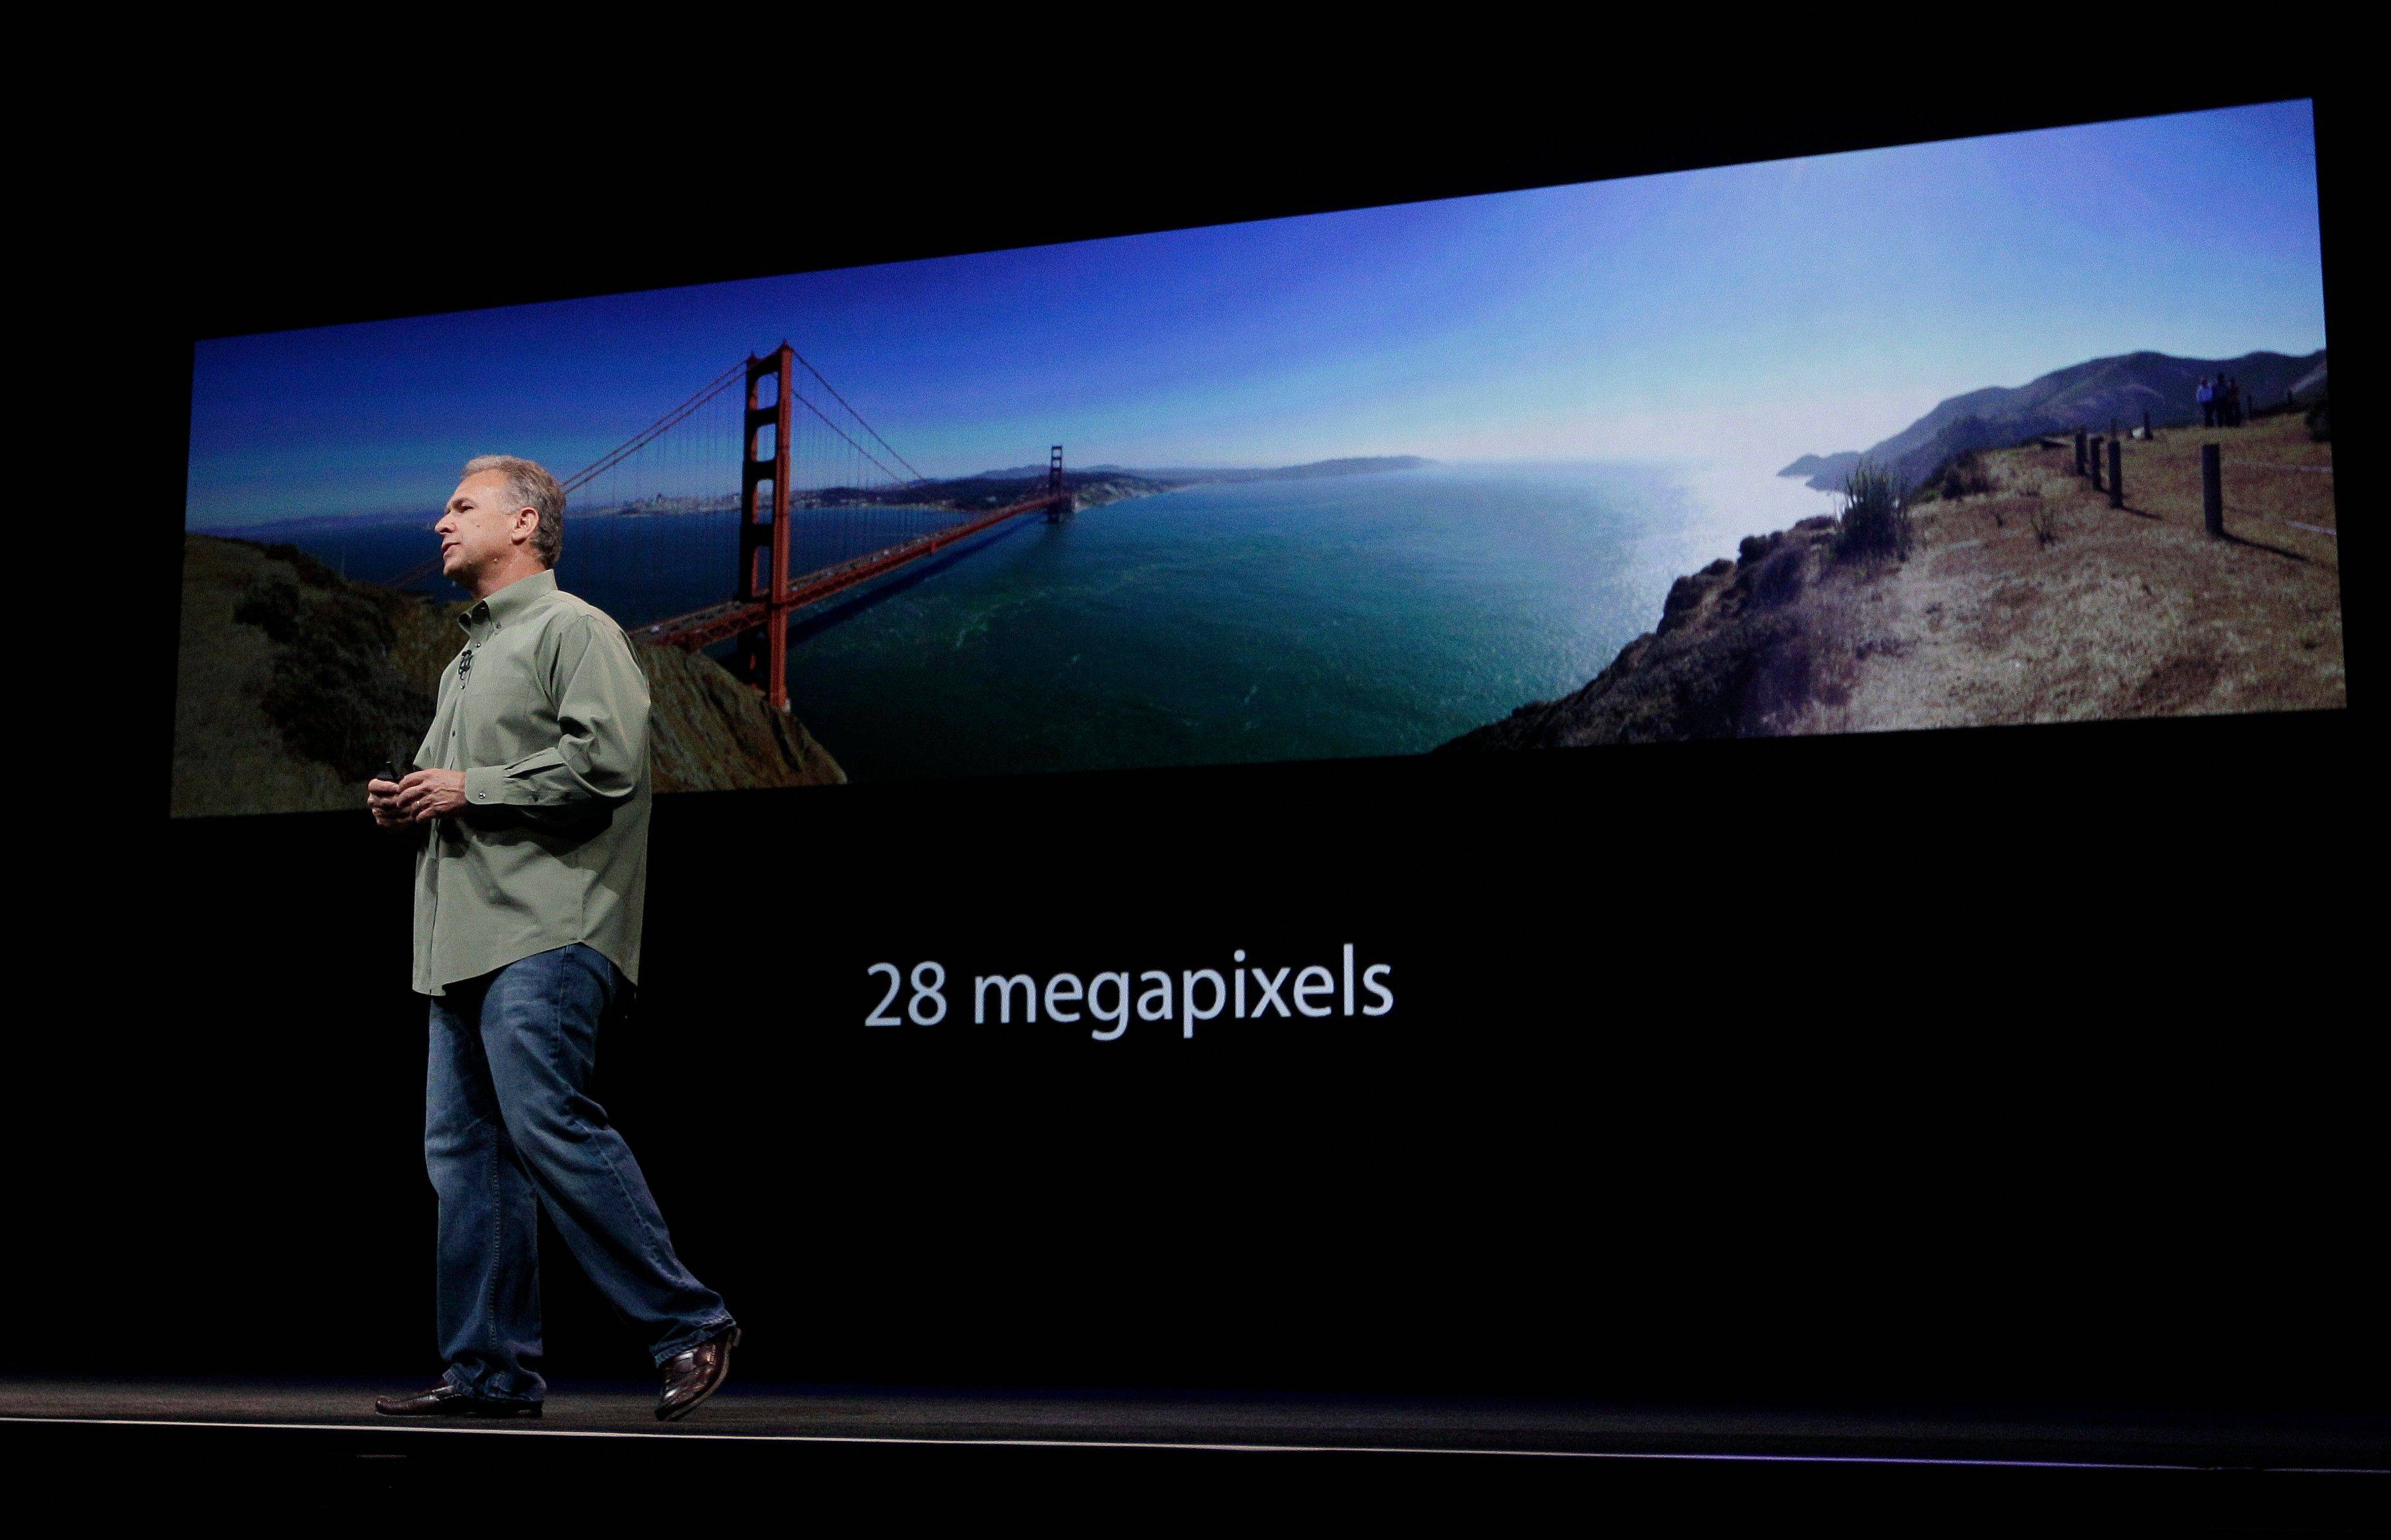 Phil Schiller, Apple's senior vice president of worldwide marketing, talks about the panoramic features of the new camera and iSight during an introduction of the new iPhone 5 in San Francisco. Every new technology job in a city creates five additional local jobs outside the sector over time, according to an analysis by Enrico Moretti, an economics professor at the University of California, Berkeley.